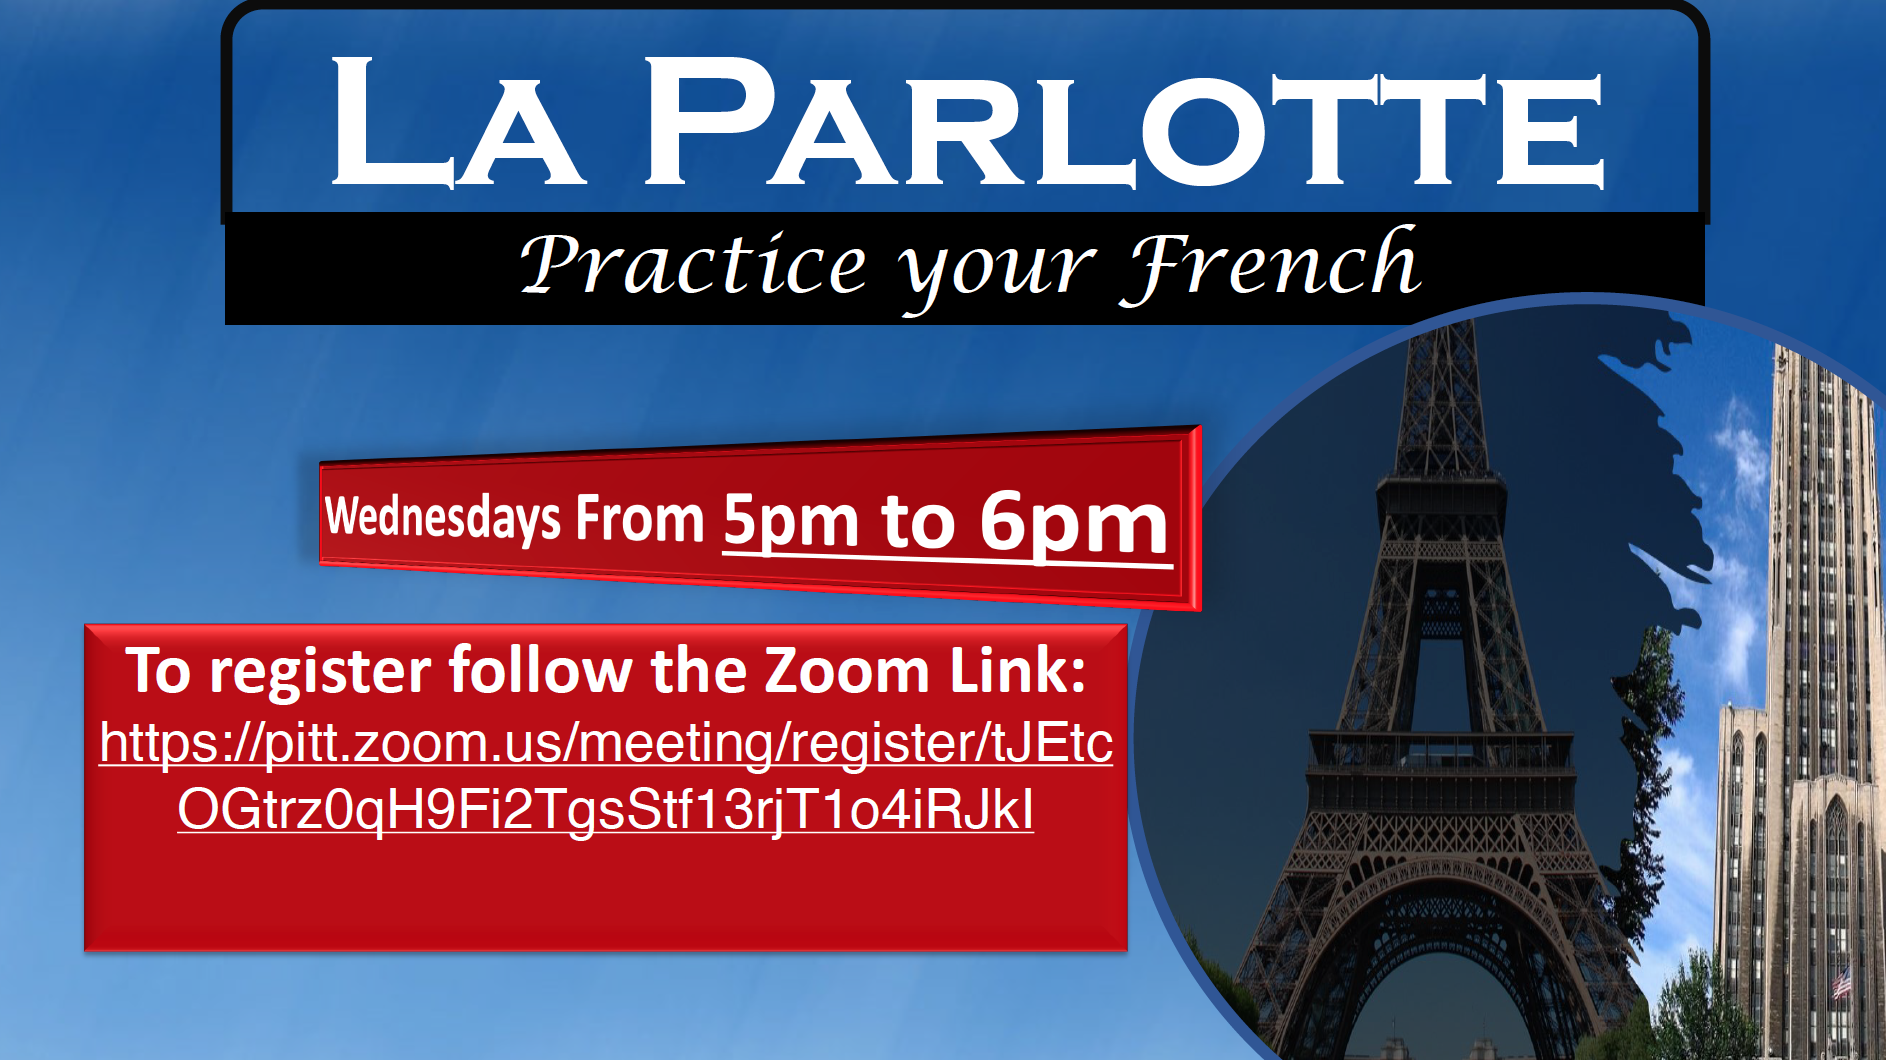 La Parlotte. Practice your French; Wednesdays from 5pm to 6pm; To register follow the Zoom Link: https://pitt.zoom.us/meeting/register/tJEtcOGtrz0qH9Fi2TgsStf13rjT1o4iRJkI; This flyer has a blue background with white text encased in red and black highlighting.